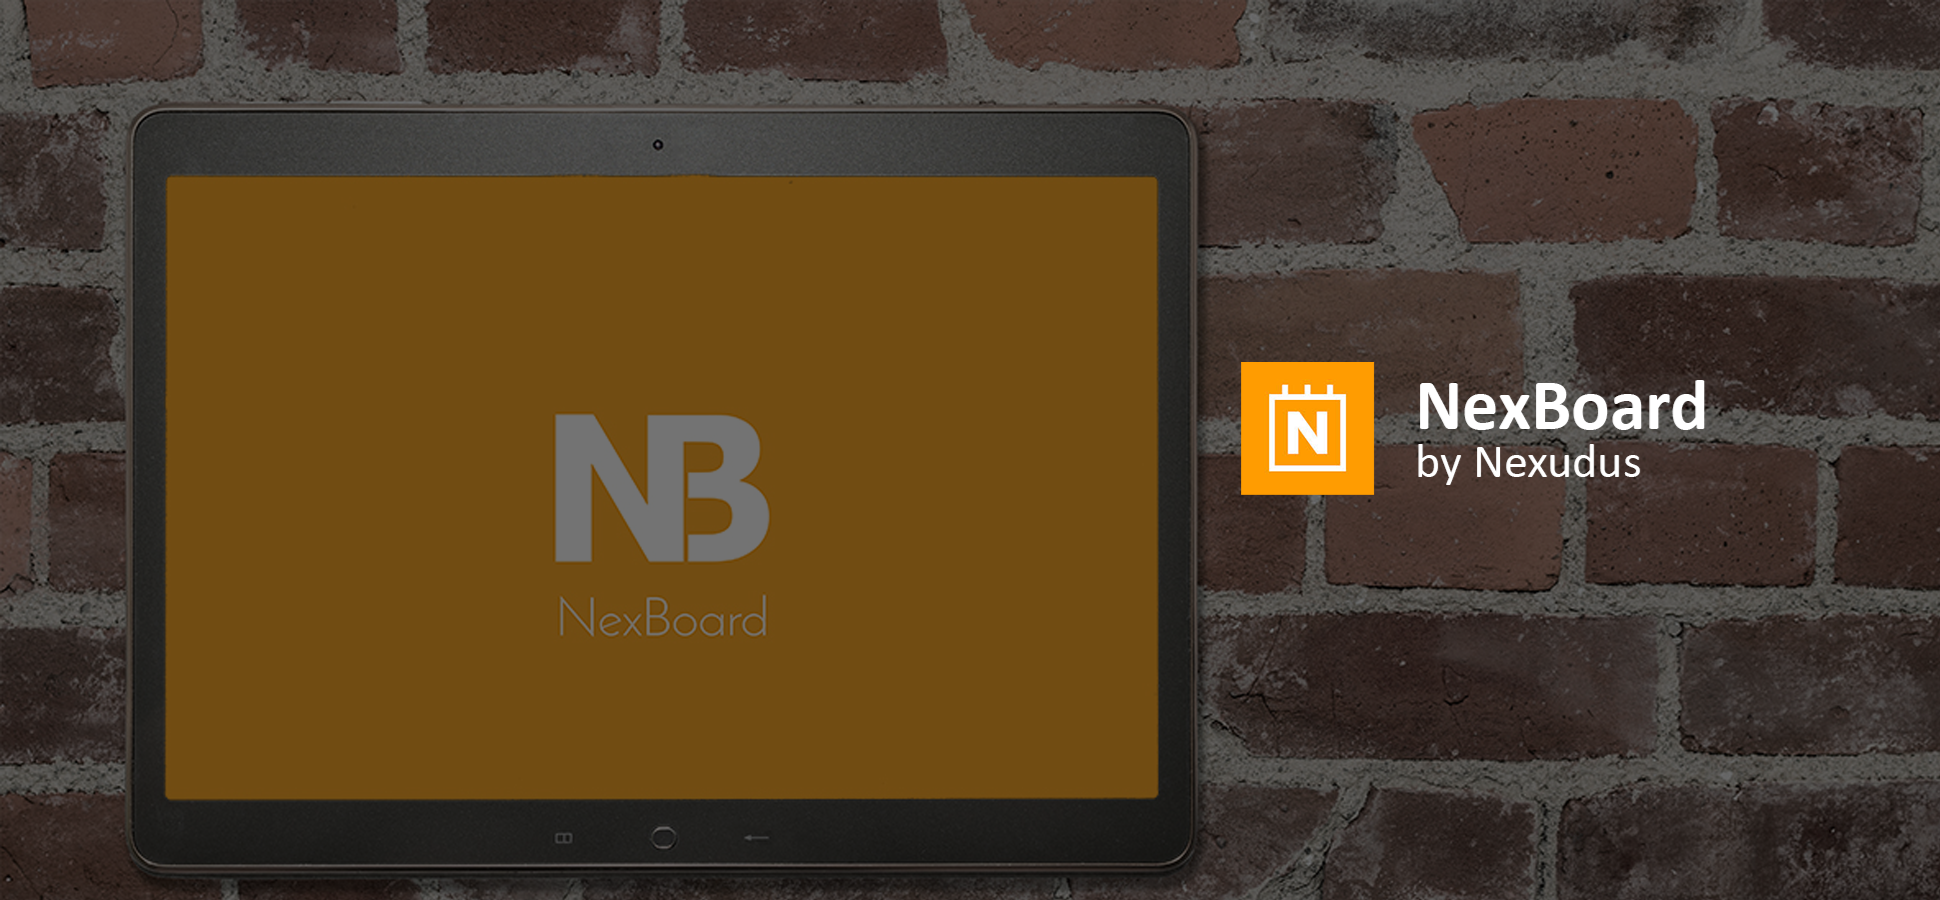 Your next meeting is just a click away with the new NexBoard APP